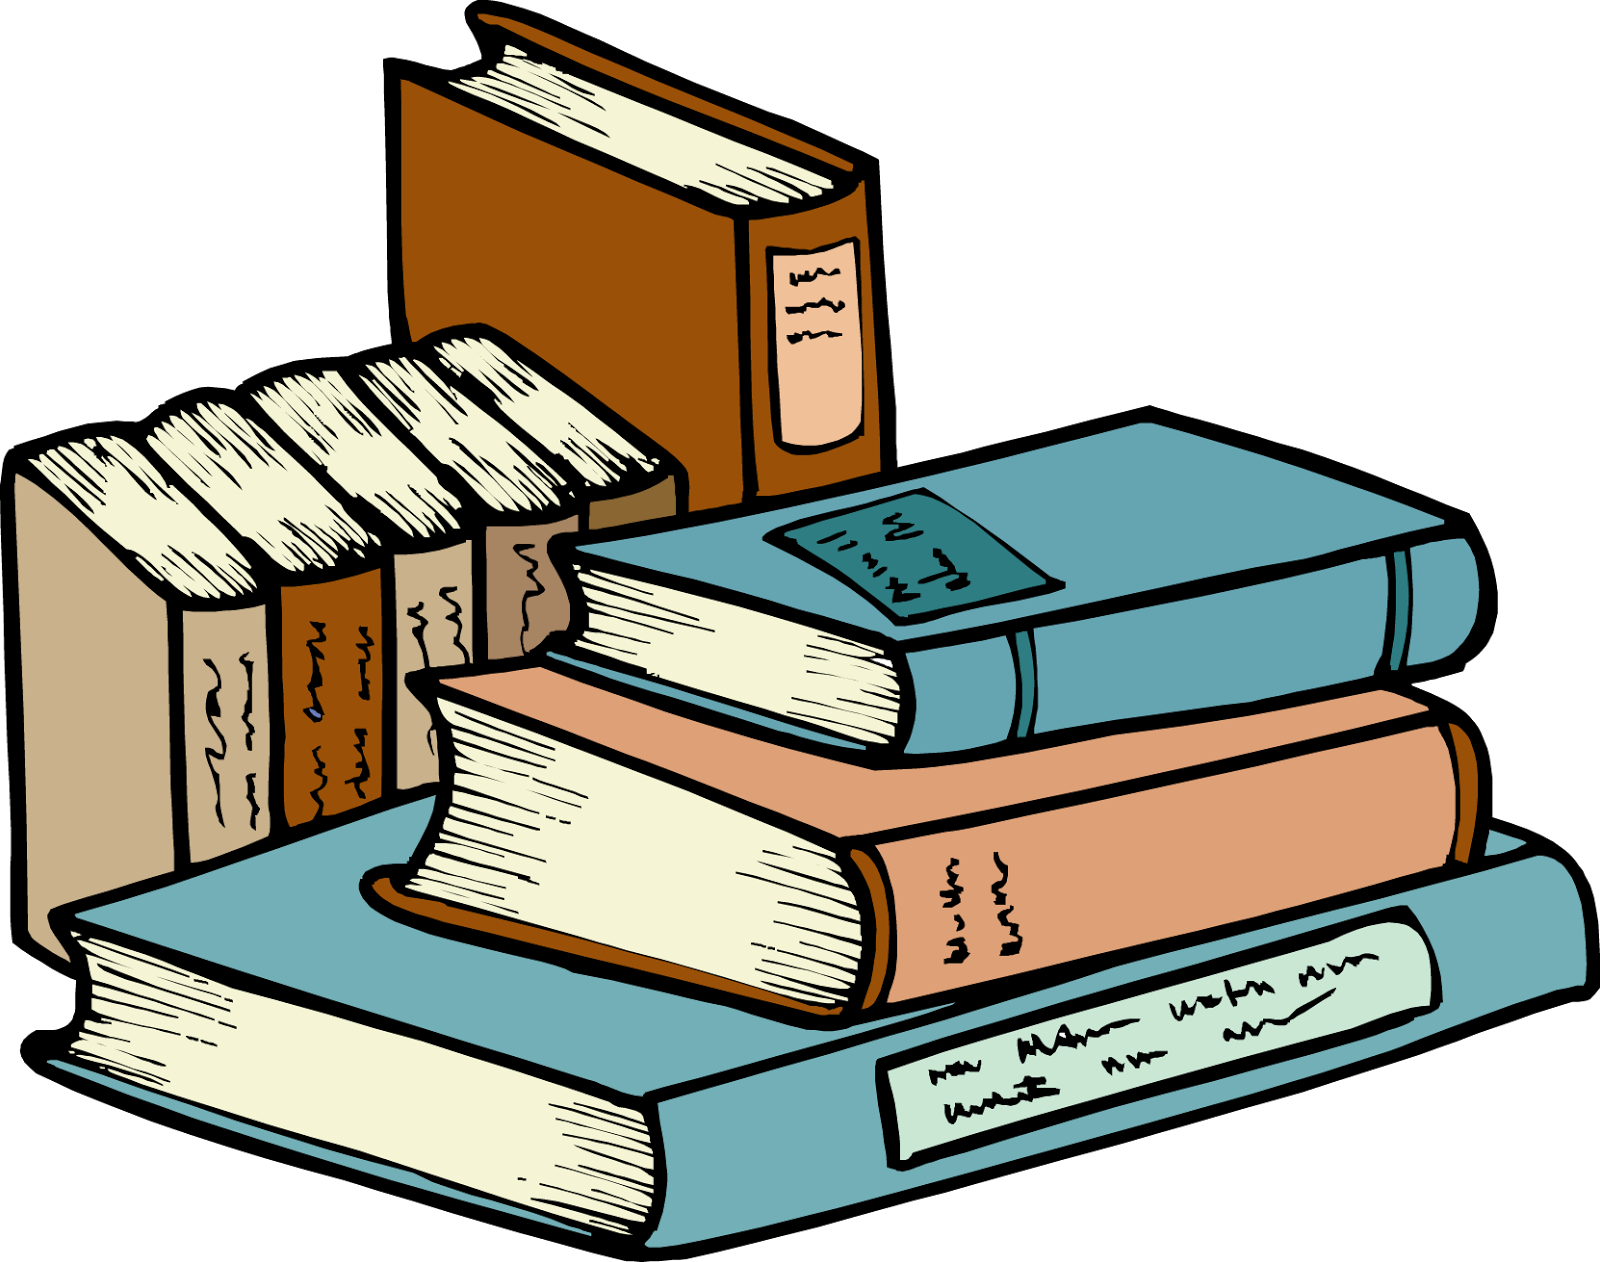 stack of books clipart-stack of books clipart-13